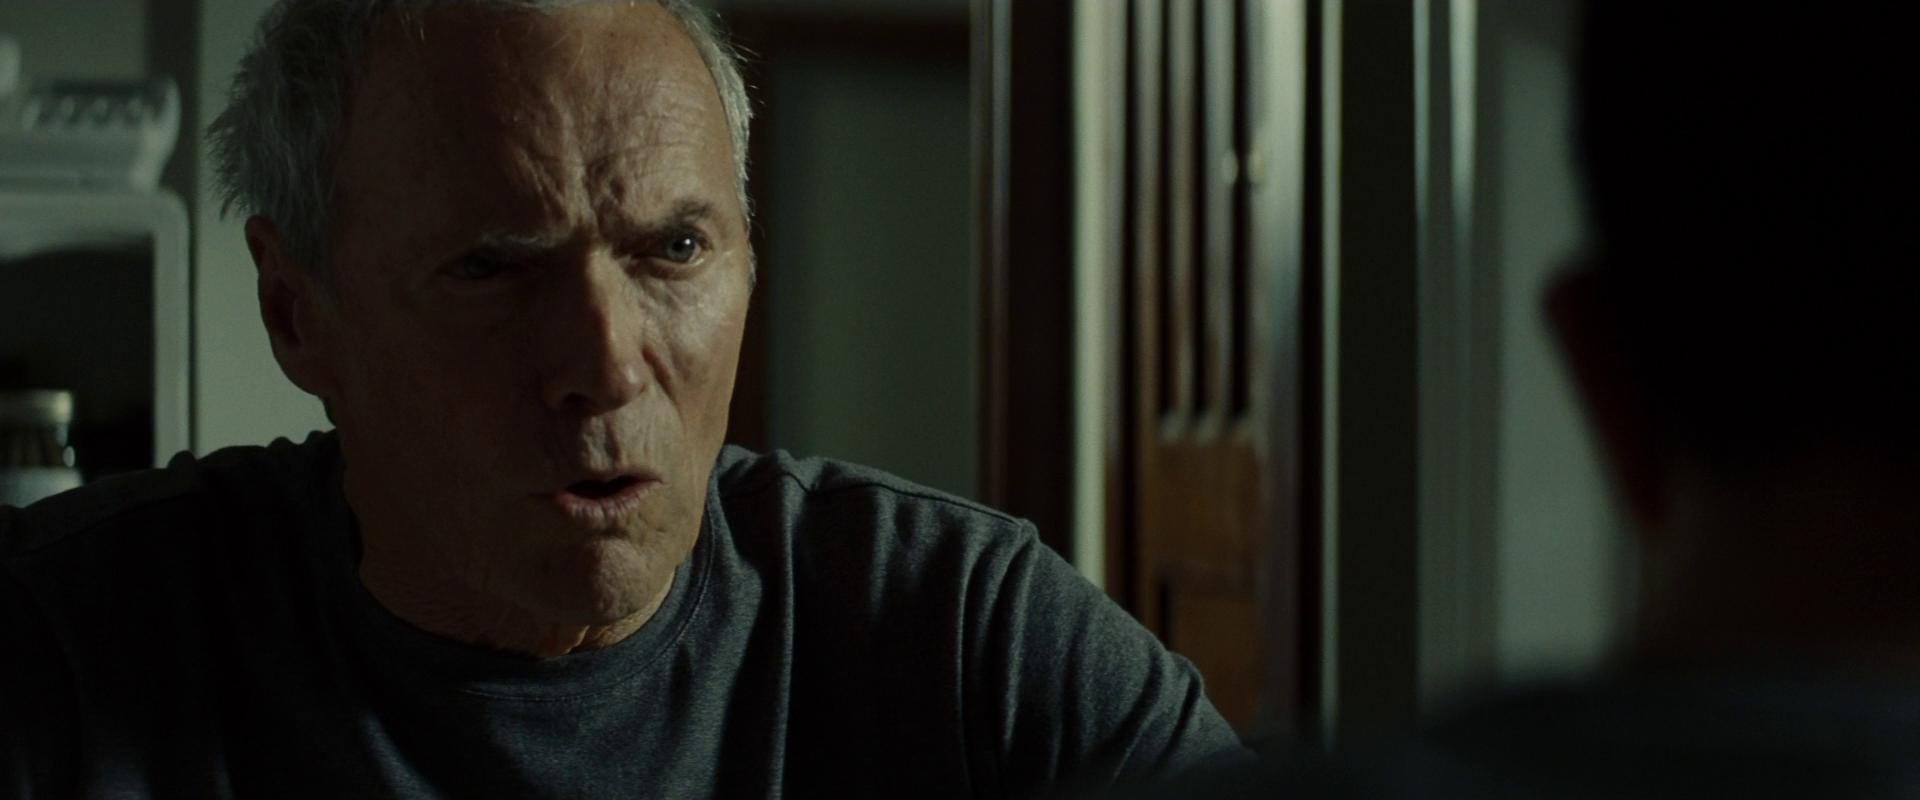 gran torino movie analysys Starring: clint eastwood, christopher carley, bee vang and others.